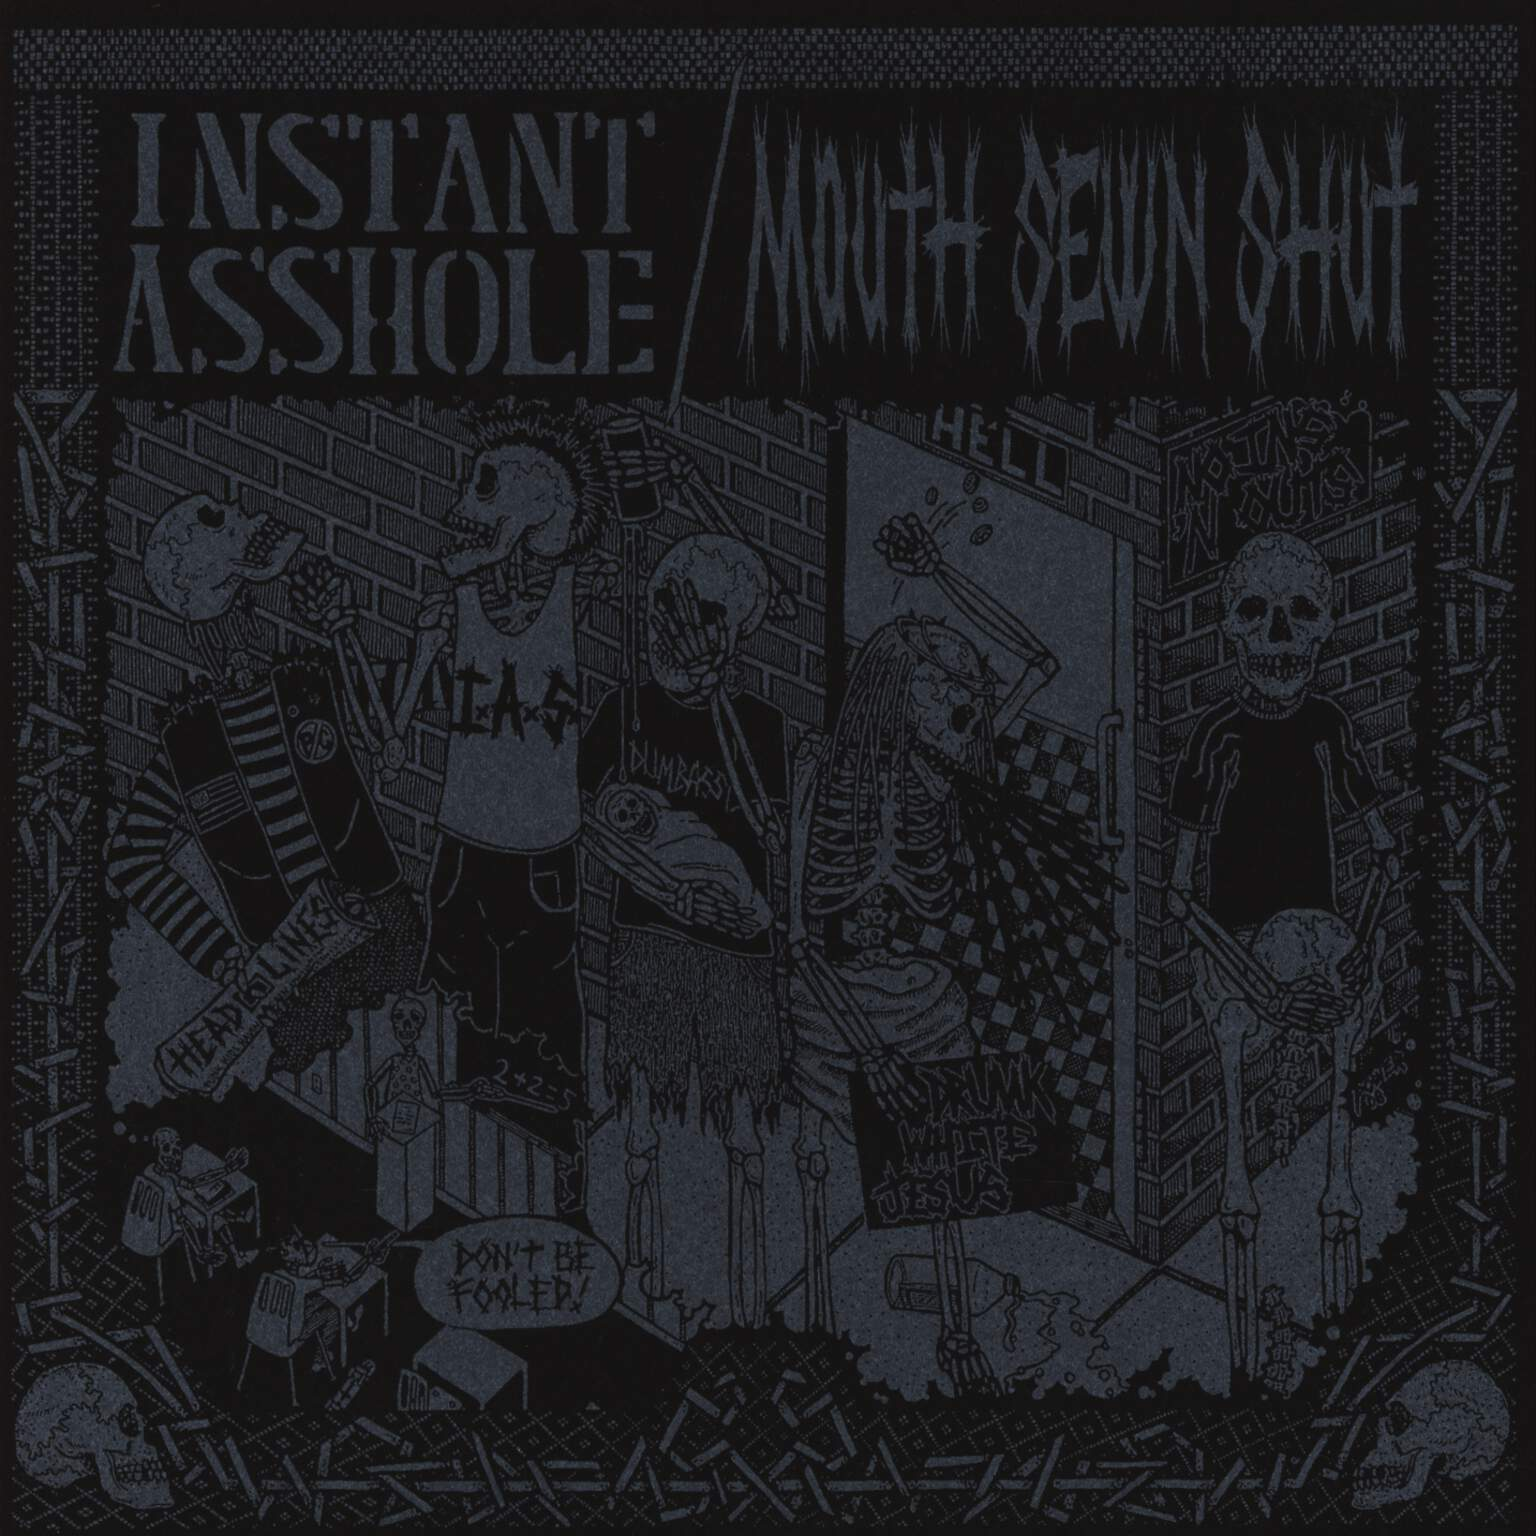 "Instant Asshole: Instant Asshole / Mouth Sewn Shut, 7"" Single (Vinyl)"